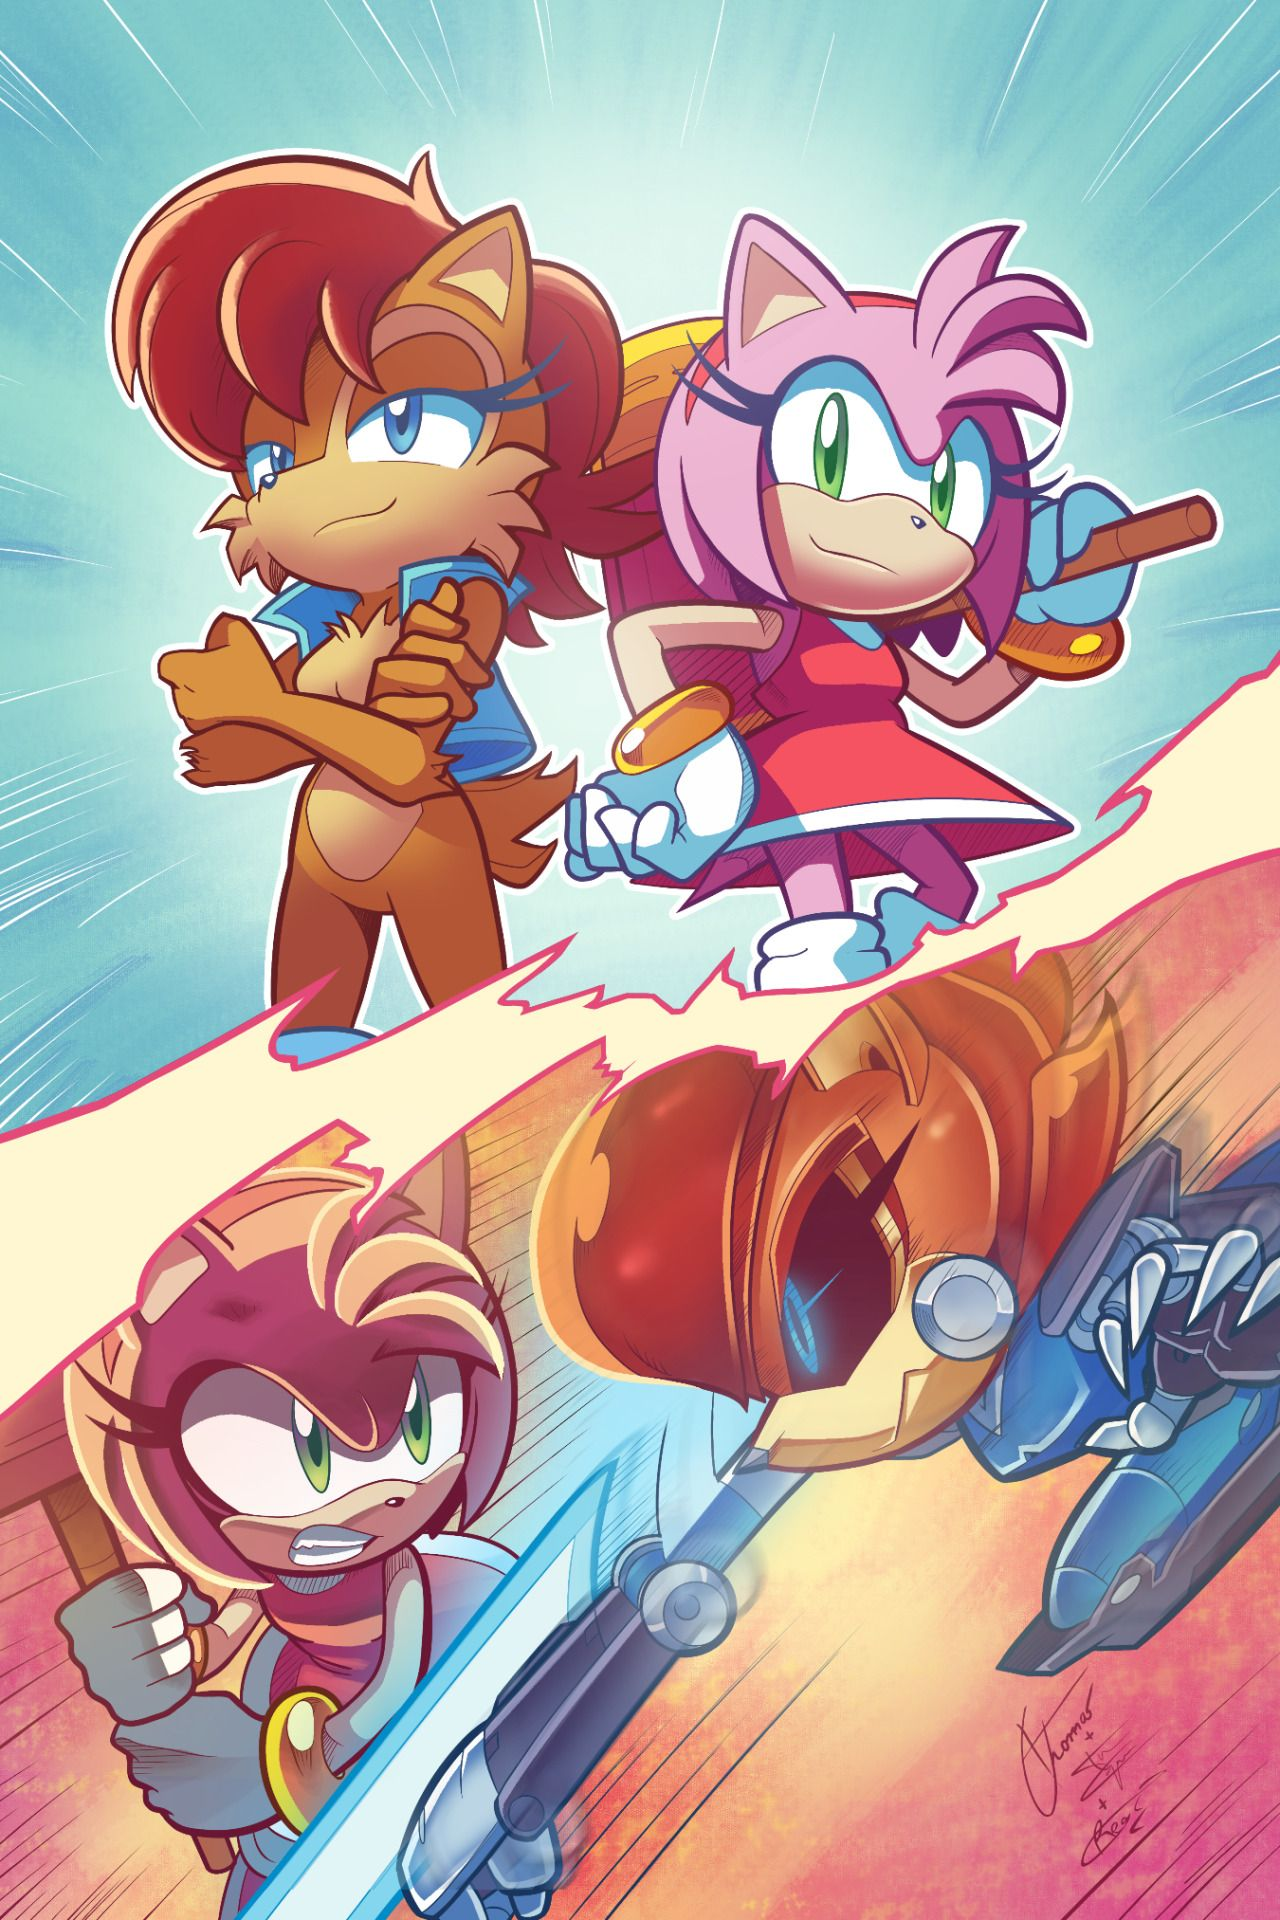 Sally acorn sonic news work pictures to pin on pinterest - Sally Acorn Tenista Archie Sonic Online Ziggyfin First Of All This Was Drawn By